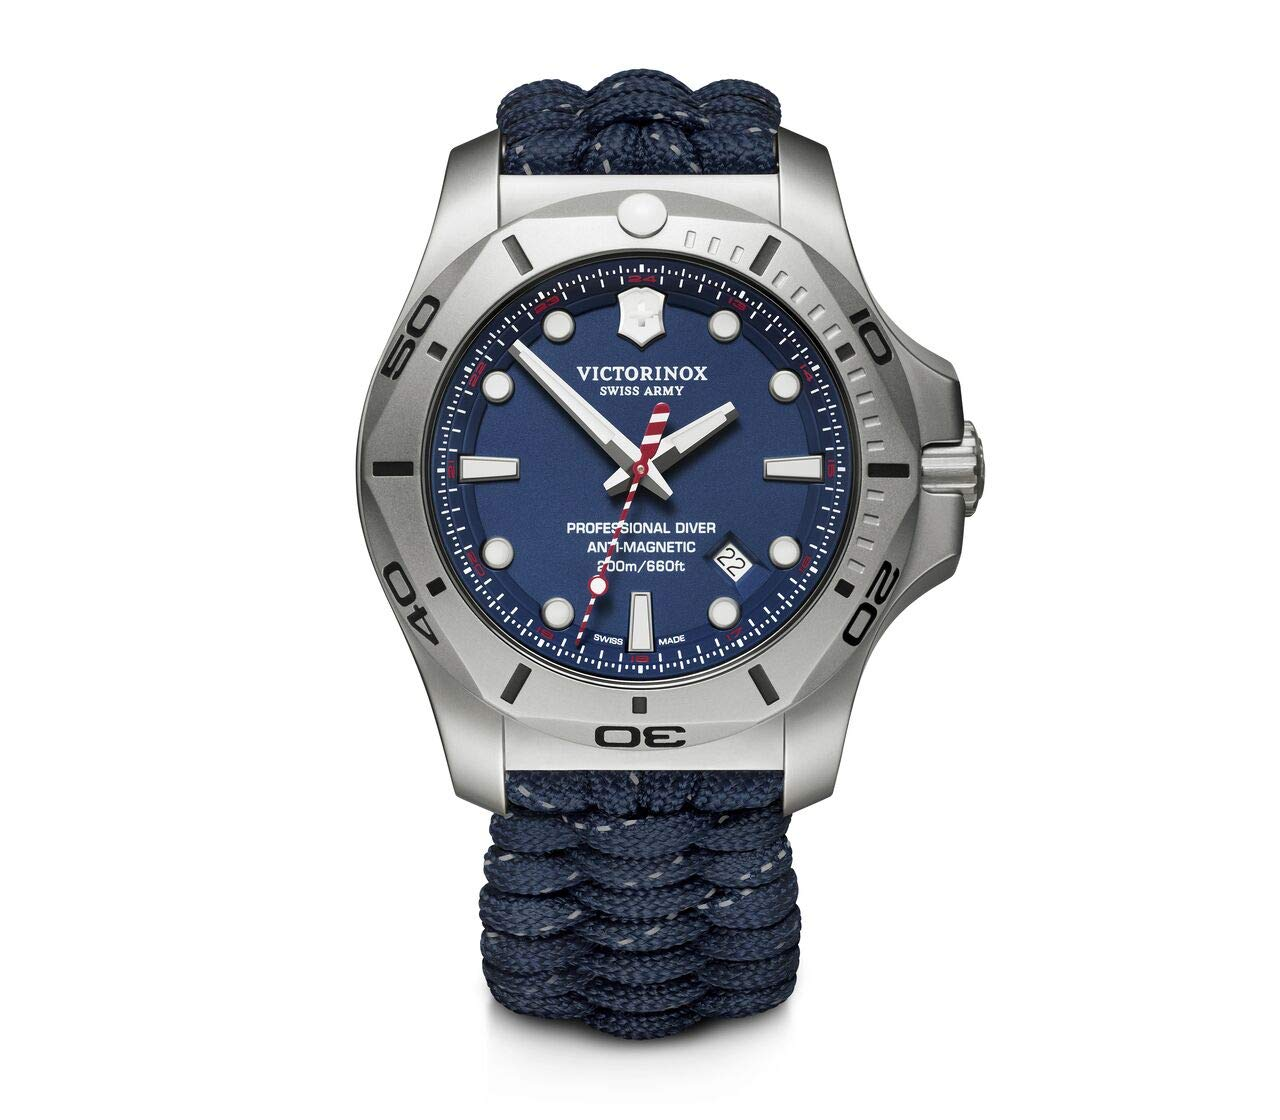 Victorinox Men's I.N.O.X. Professional Diver – Swiss Made Analogue Quartz Stainless Steel Watch 241843